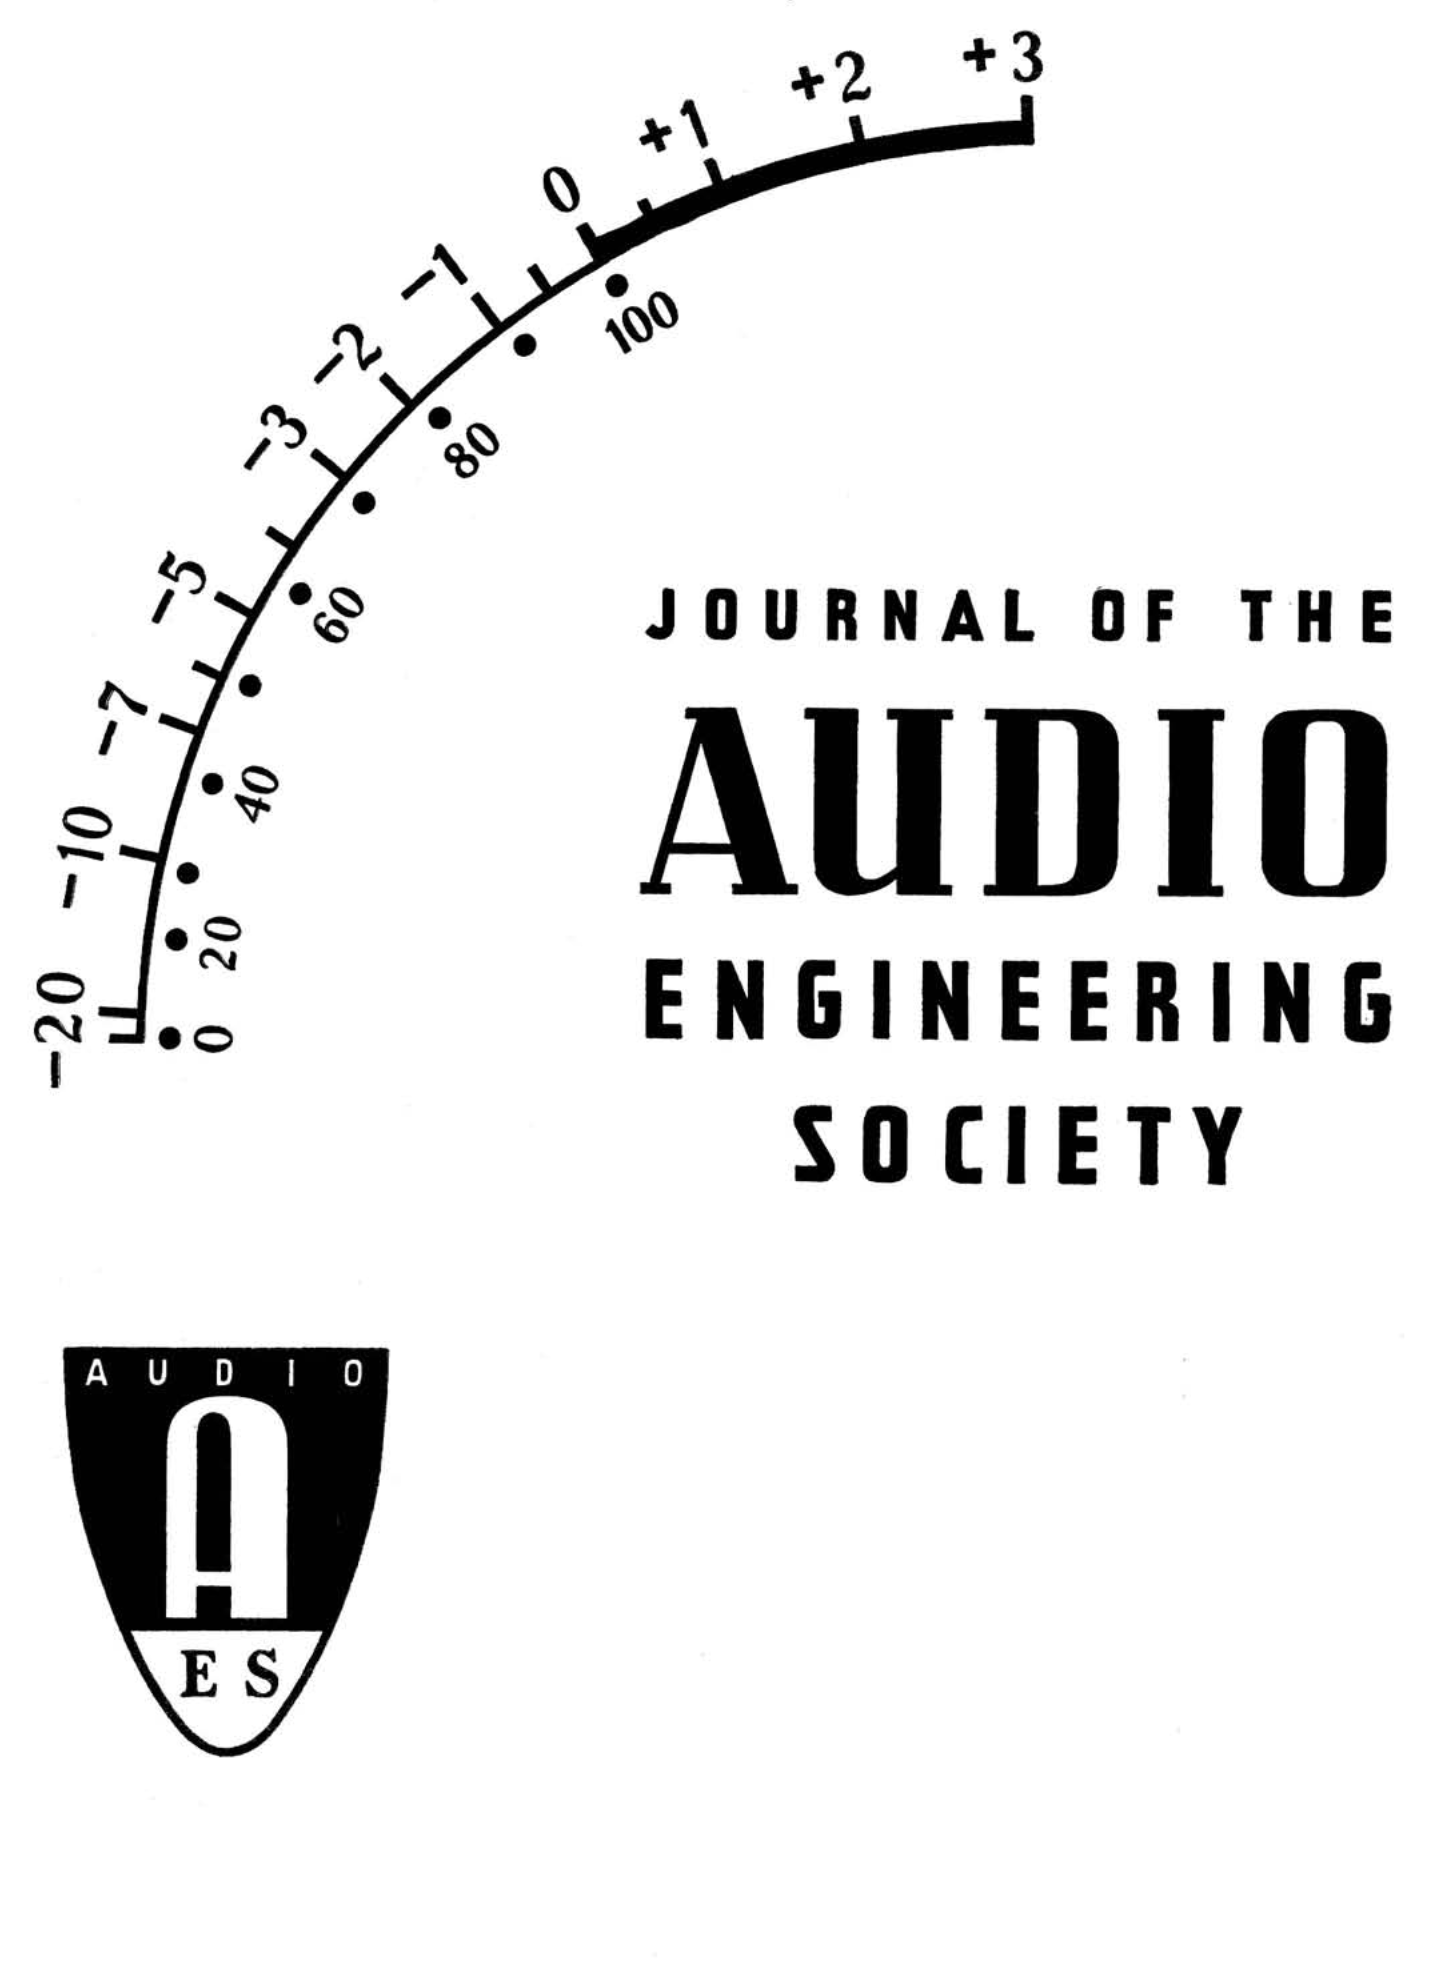 Aes E Library Complete Journal Volume 5 Issue 2 Based On The Classic Baxendall Tone Control Circuit This Provides A